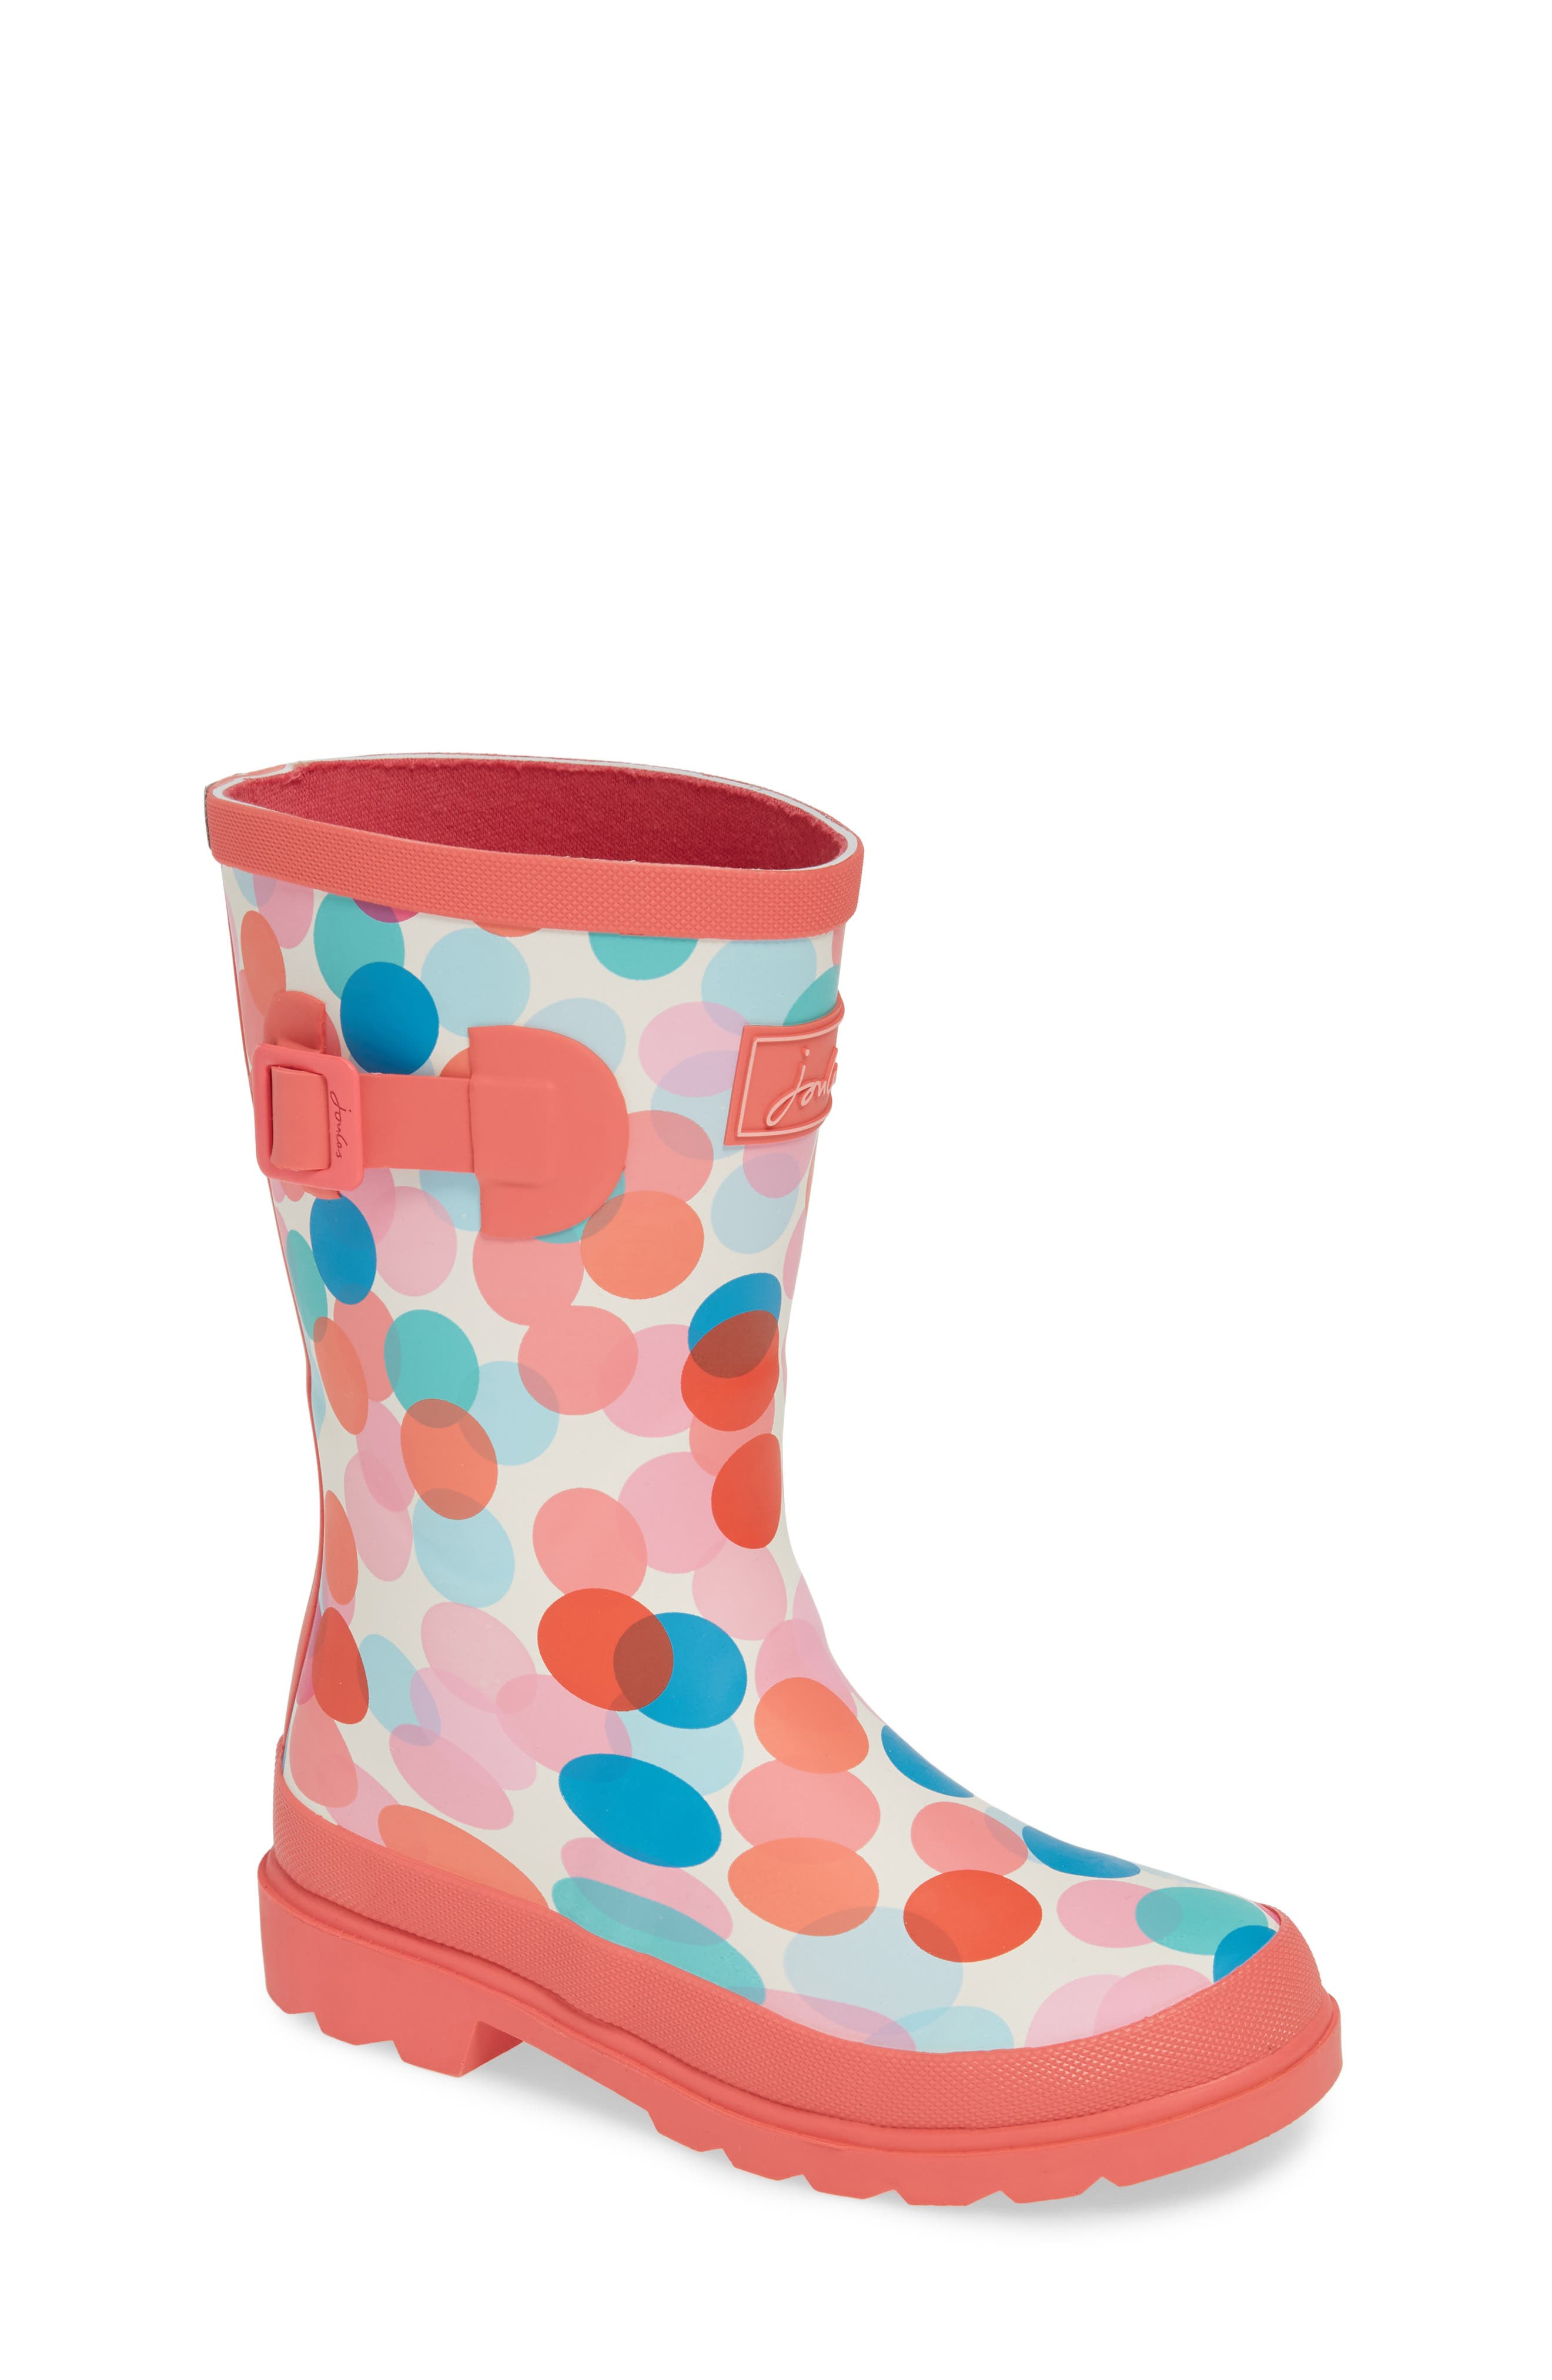 JOULES, Mid Height Print Welly Waterproof Rain Boot, Main thumbnail 1, color, CREAM FAIRY DITSY